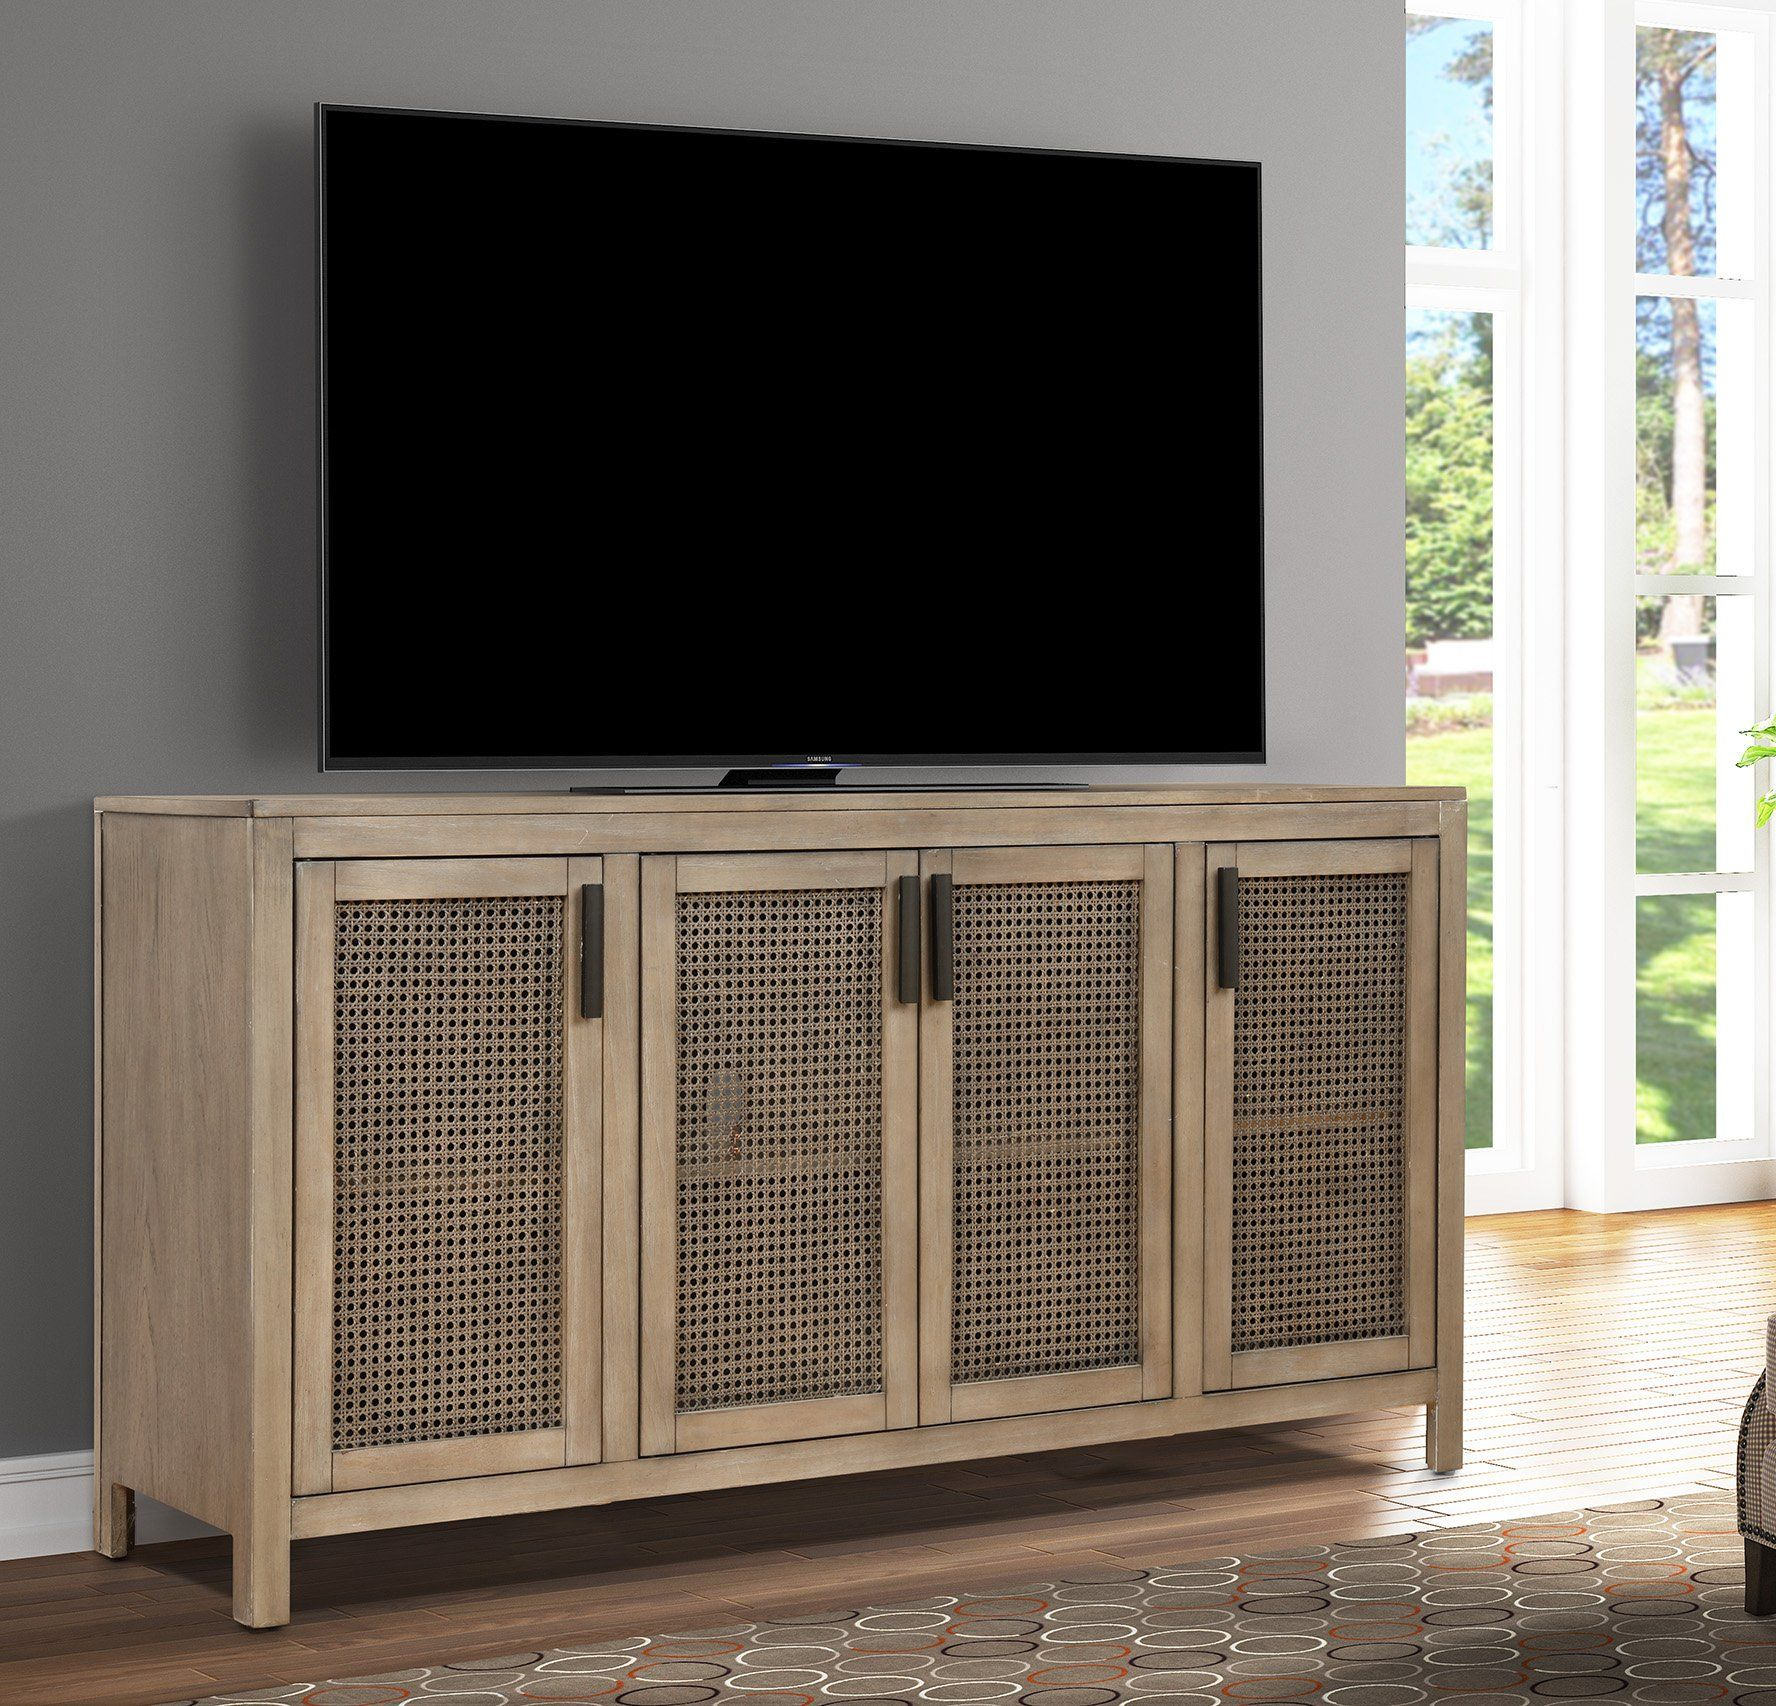 Birch 60 Inch Tv Stand Jane 60 Inch Tv Stand Tv Stand Decor Living Room 60 Tv Stand Tall tv stand for 60 inch tv